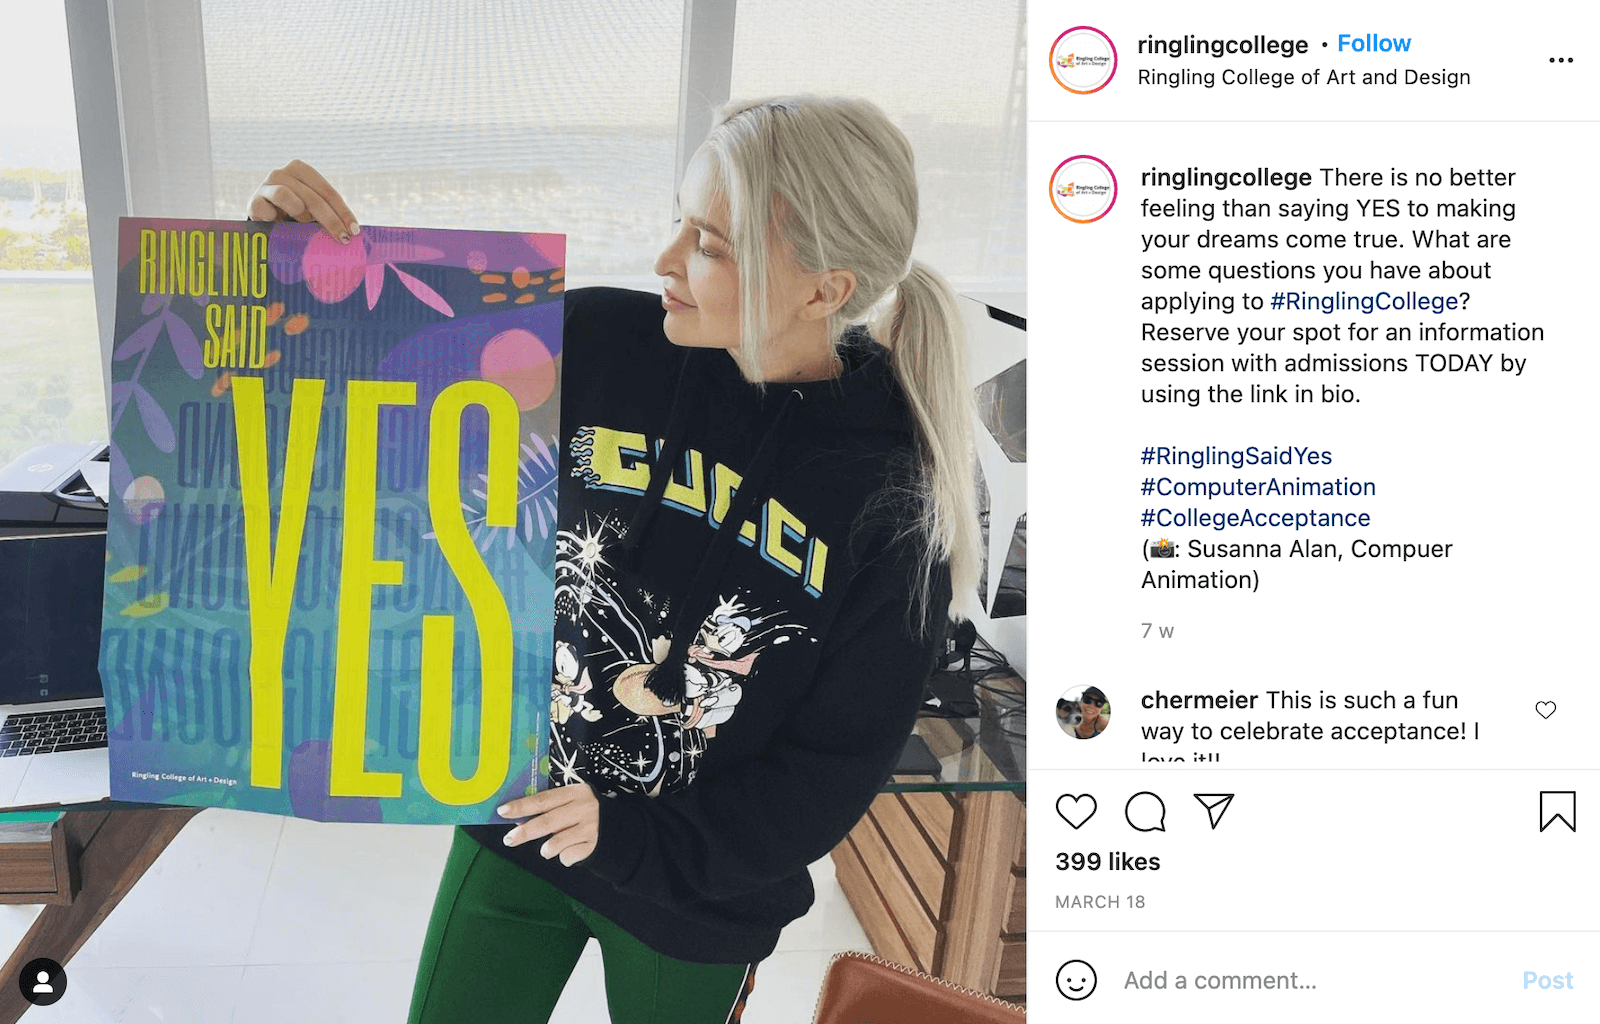 """Ringling College's repost on Instagram of a post by future """"Computer Animation"""" student Susanna Alan. The photo shows a person with long whitish-blonde hair in a ponytail and a large black hoodie with a cartoon print on it. They're holding up and looking proudly at a colourful poster that says """"Ringling said YES"""". The caption reads: There is no better feeling than saying YES to making your dreams come true. What are some questions you have about applying to #RinglingCollege? Reserve your spot for an information session with admissions TODAY by using the link in bio.  #RinglingSaidYes #ComputerAnimation #CollegeAcceptance (📸: Susanna Alan, Compuer Animation)"""